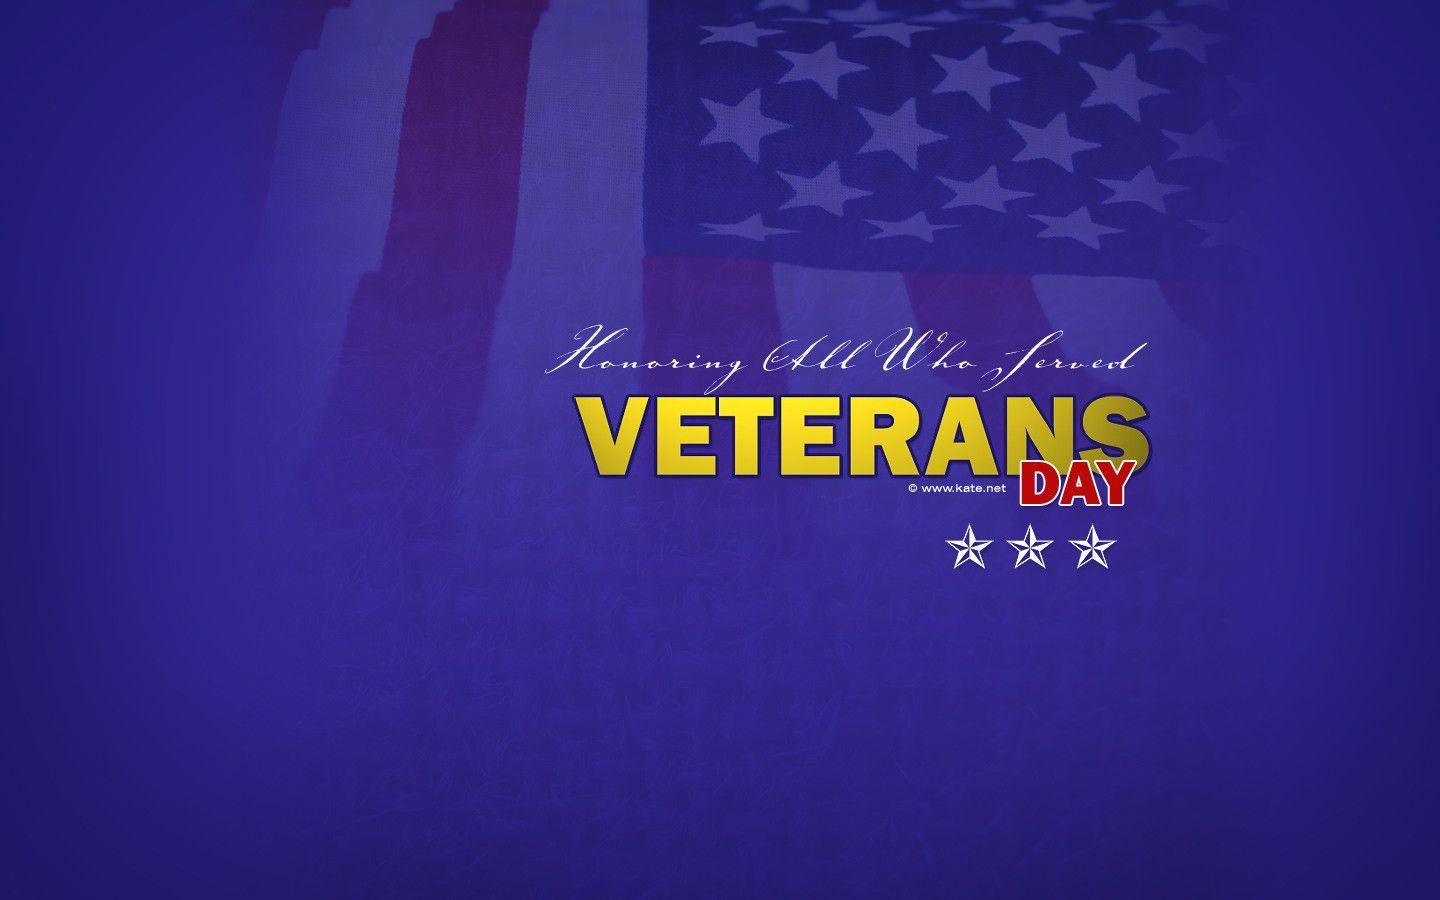 Veterans Day Wallpaper Fresh Veterans Day Wallpapers Wallpaper Cave ...